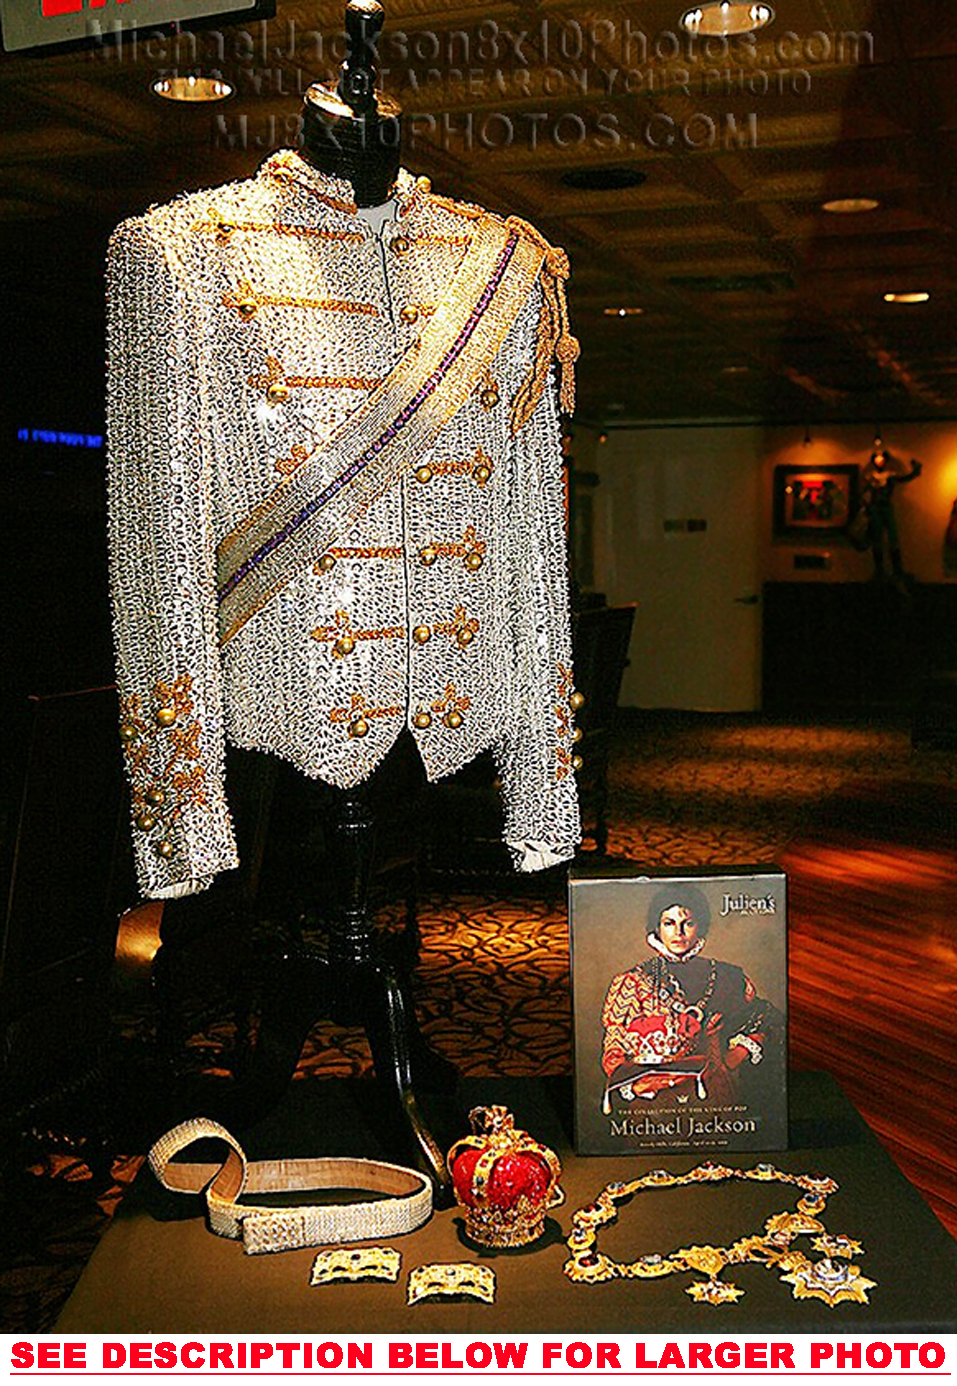 One Of Michael's Custom-Made Military Jackets